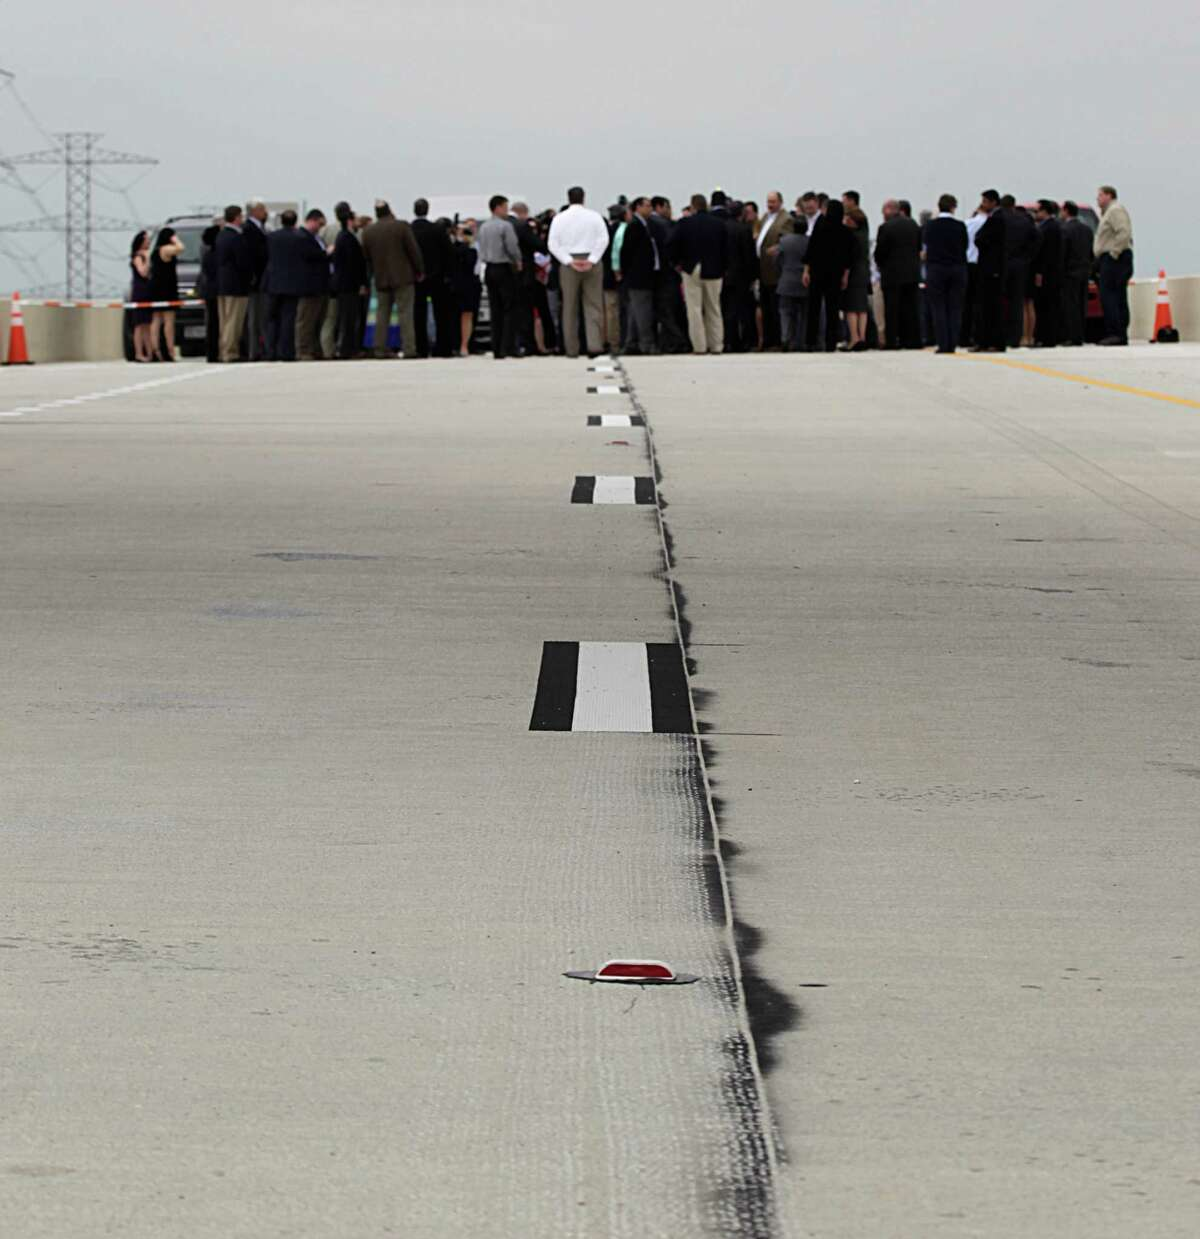 Officials and others guest stand on the Grand Parkway during the Texas Department of Transportation ribbon cutting celebration for the completion of the newest segment from Interstate 45 to U.S. 59 on March 29 in Spring.